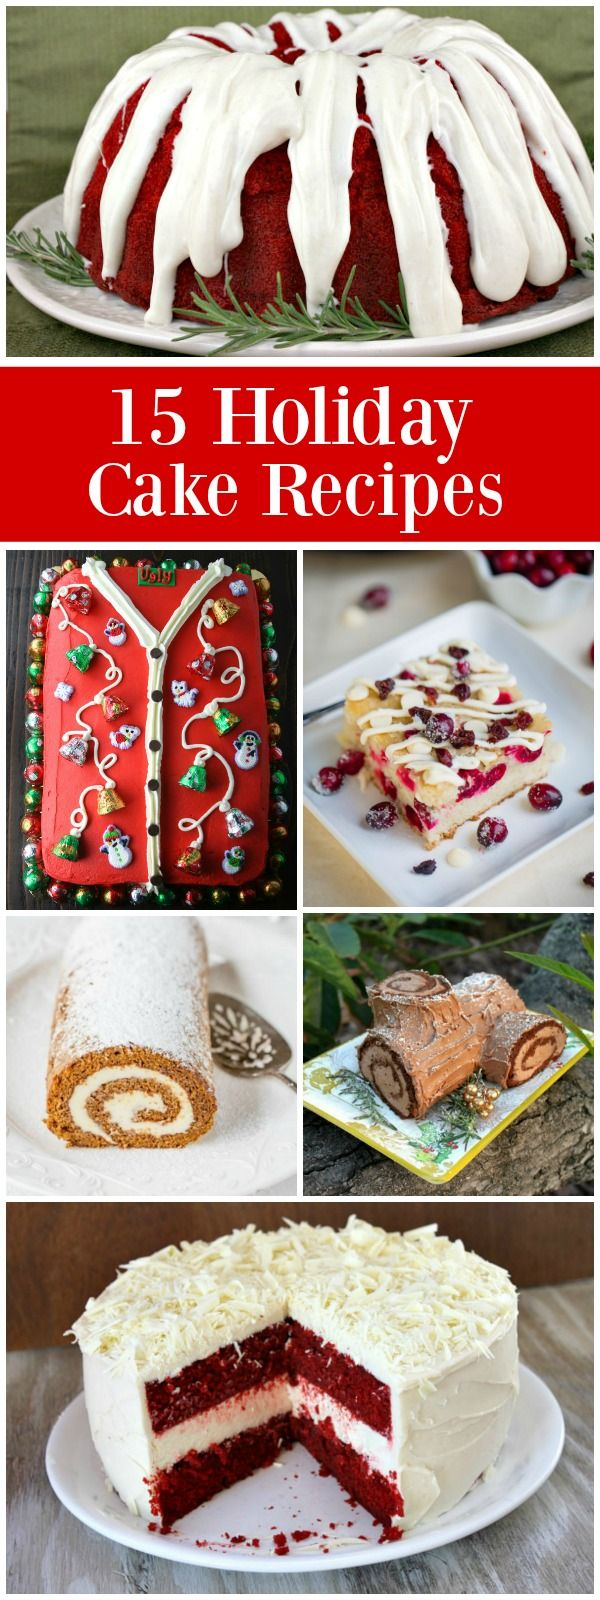 15 Impressive Holiday Cake recipes: including a Red Velvet Bundt Cake with Cinnamon Cream Cheese Frosting, Yule Log, Chocolate- Peppermint Cake, Gingerbread Cake and more!